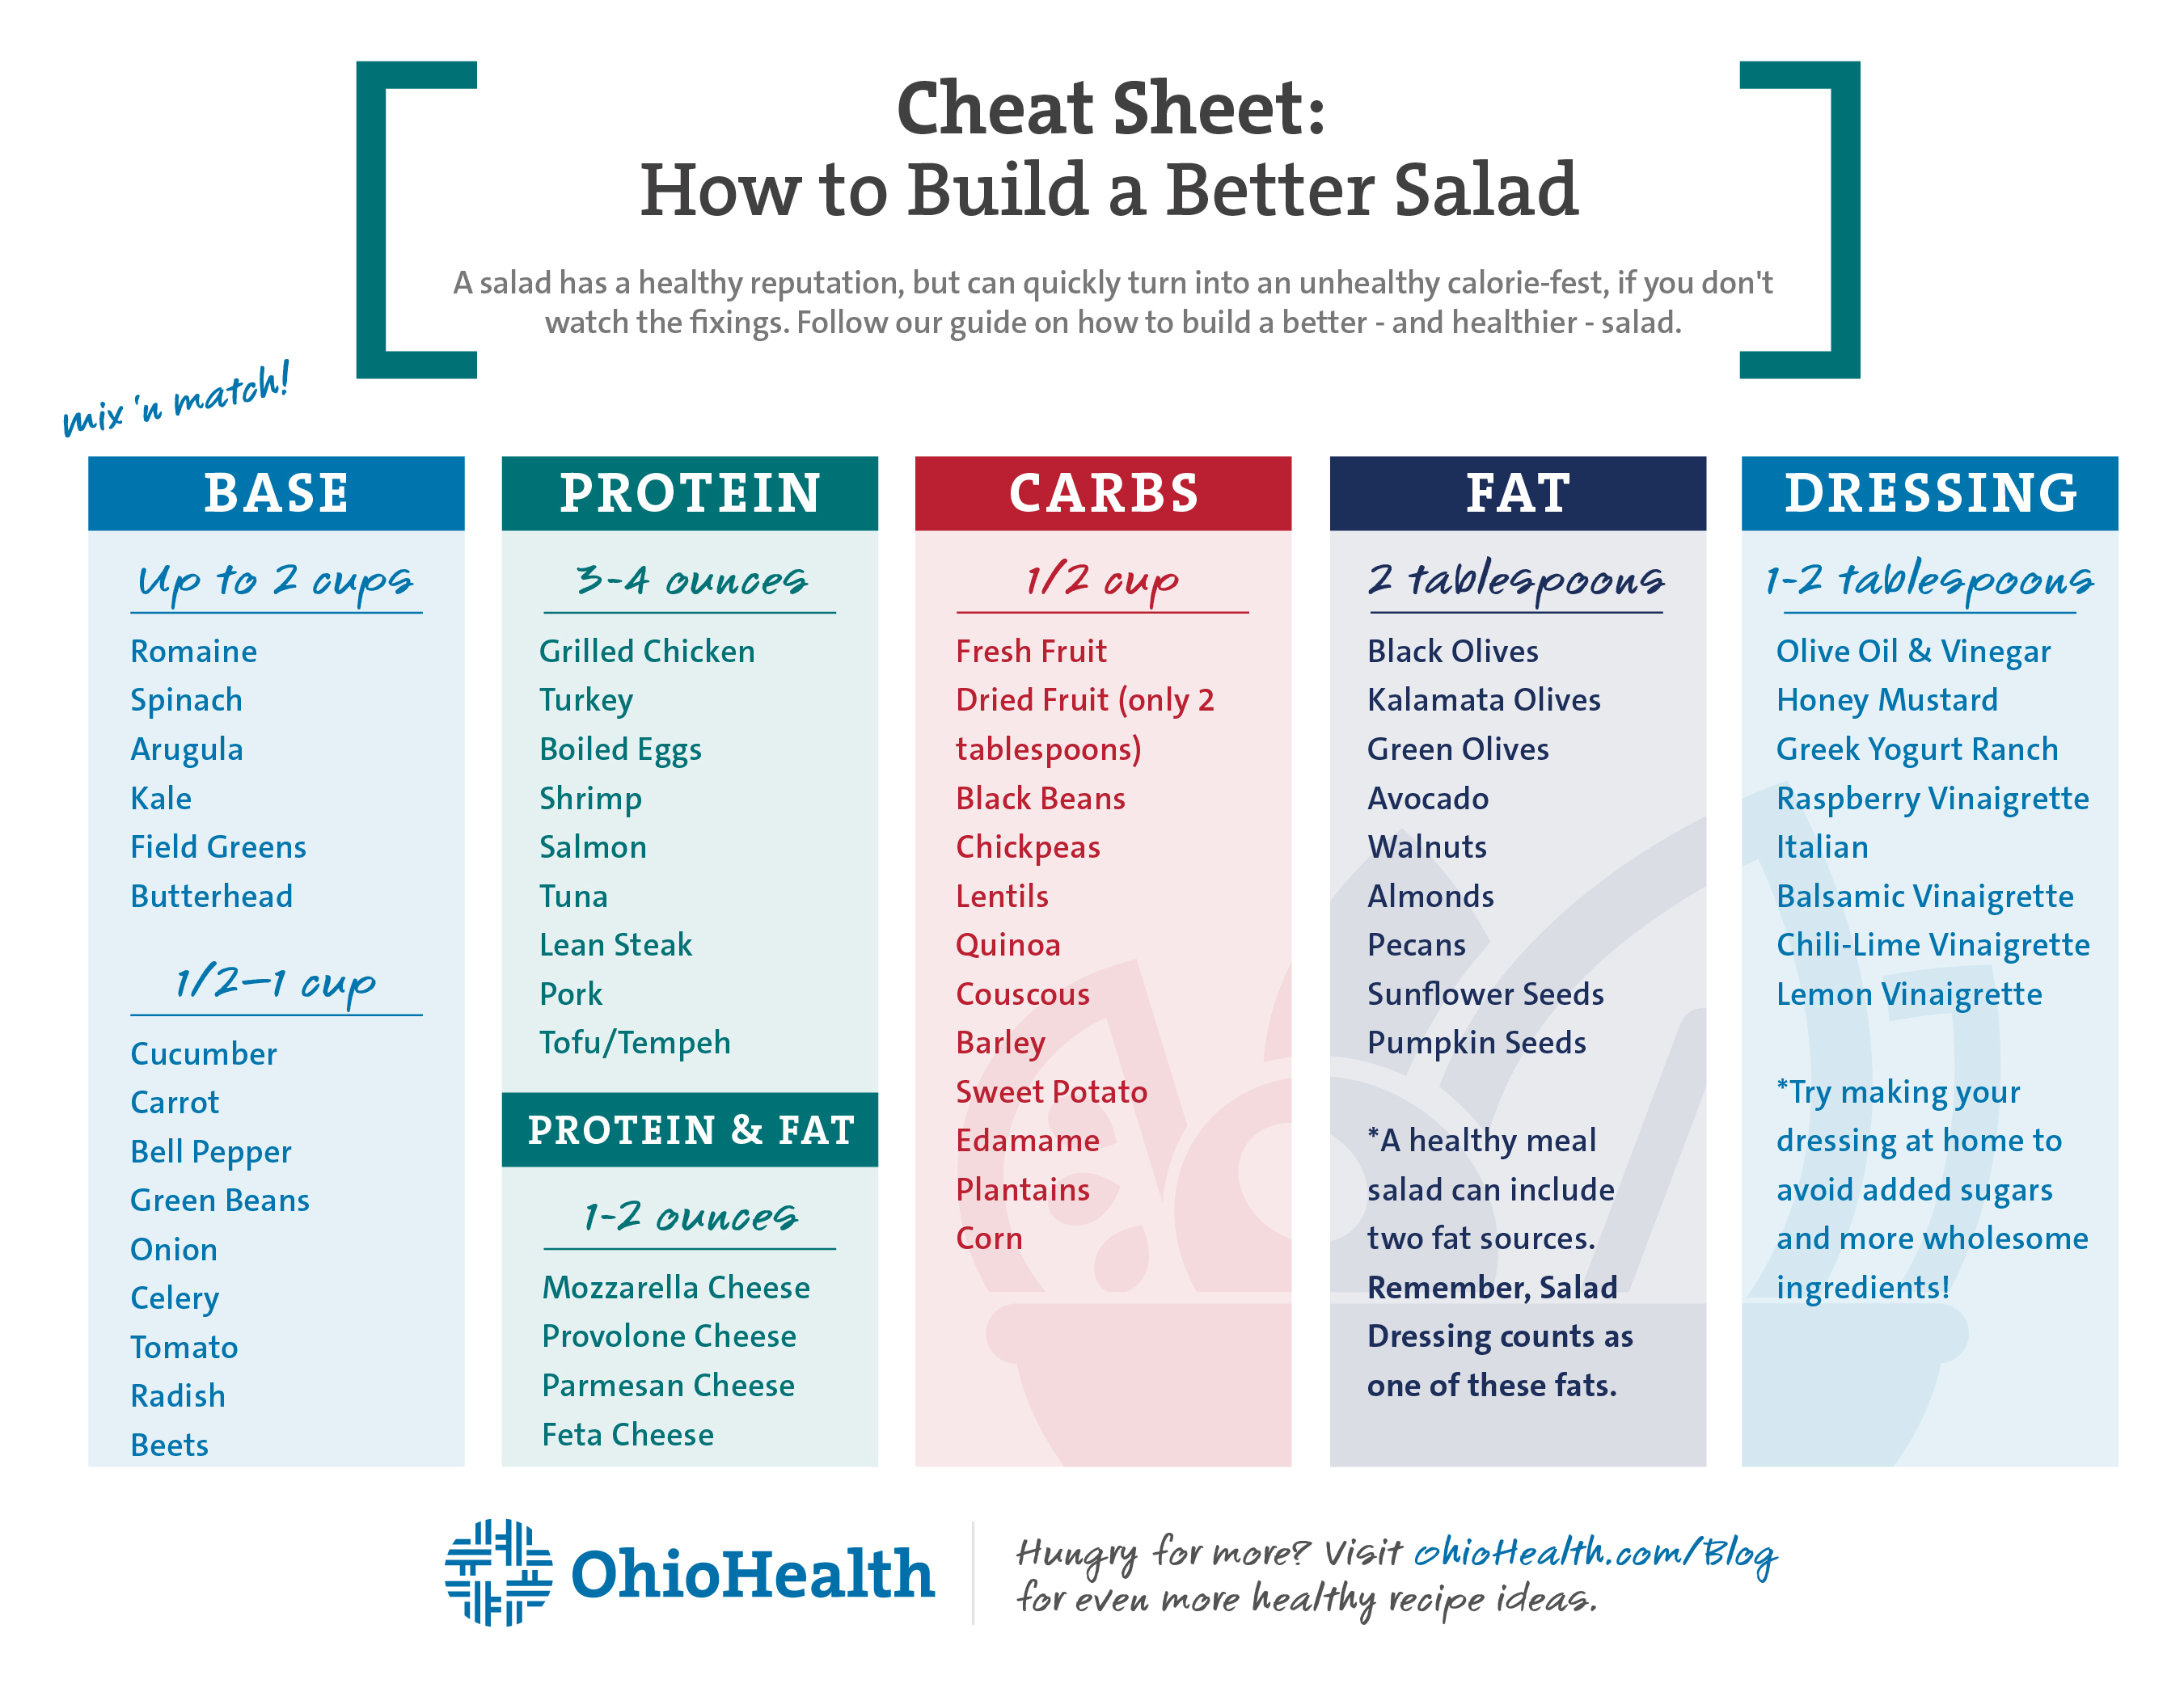 How to Build a Better Salad Cheat Sheet